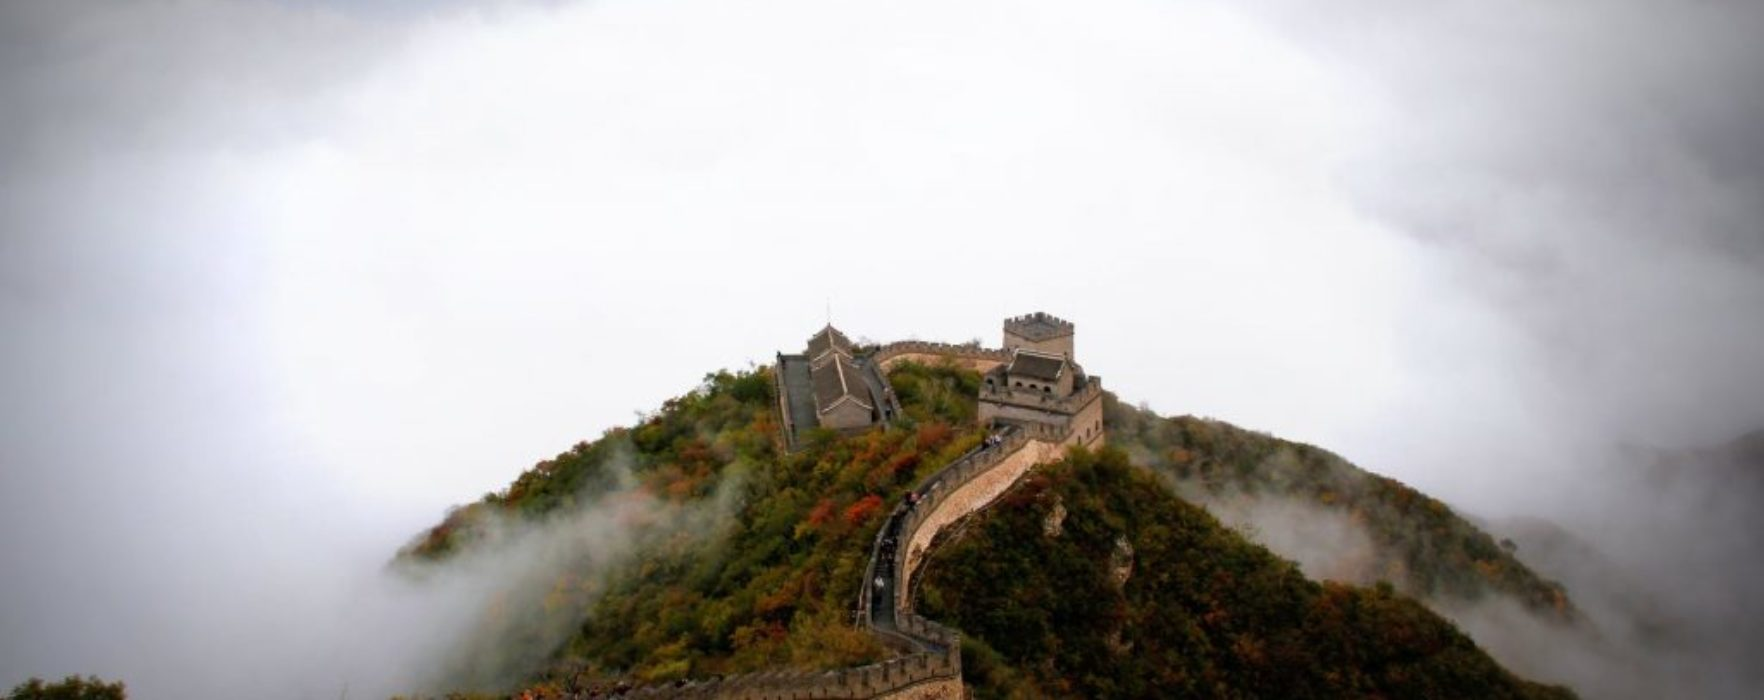 The Great Wall tops the list of attractions British travellers most want to visit in China